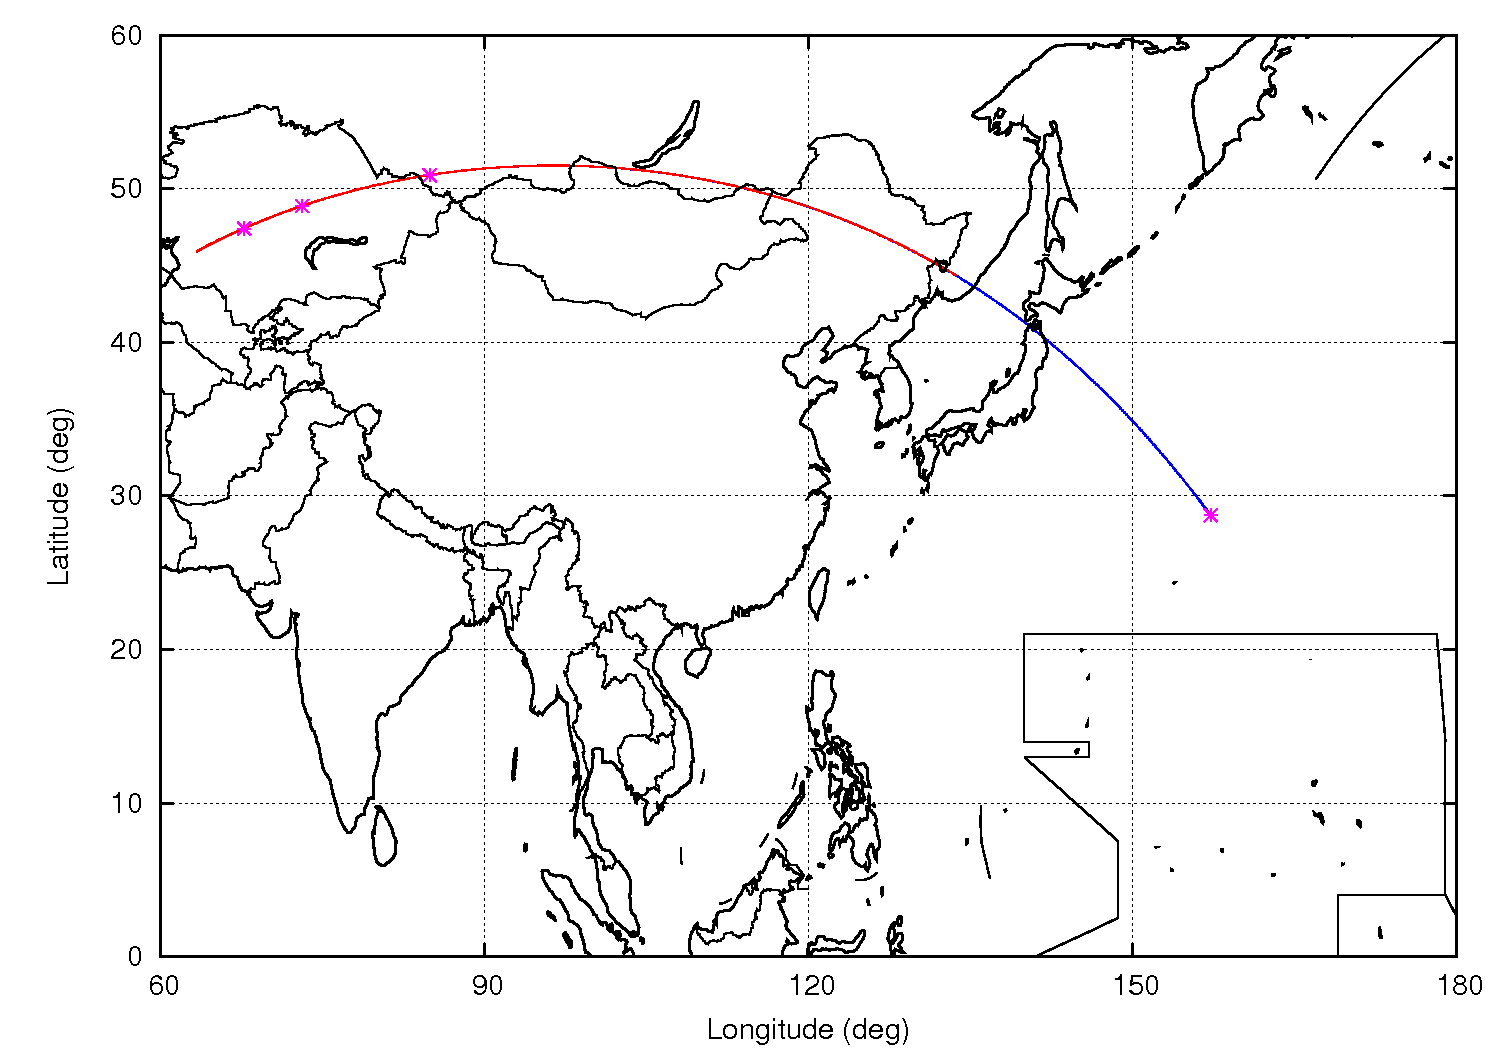 Fig 2: Again, the initial launch into low parking orbit. The launch inclination of 51.5 deg is chosen such that the groundtrack hugs the border to Mongolia and passes between the Japanese islands of Hokkaido and Honshuu. The Russian rocket launch strategies have been designed very painstakingly to minimize the risk to inhabited regions. Credit: ESA/M. Khan